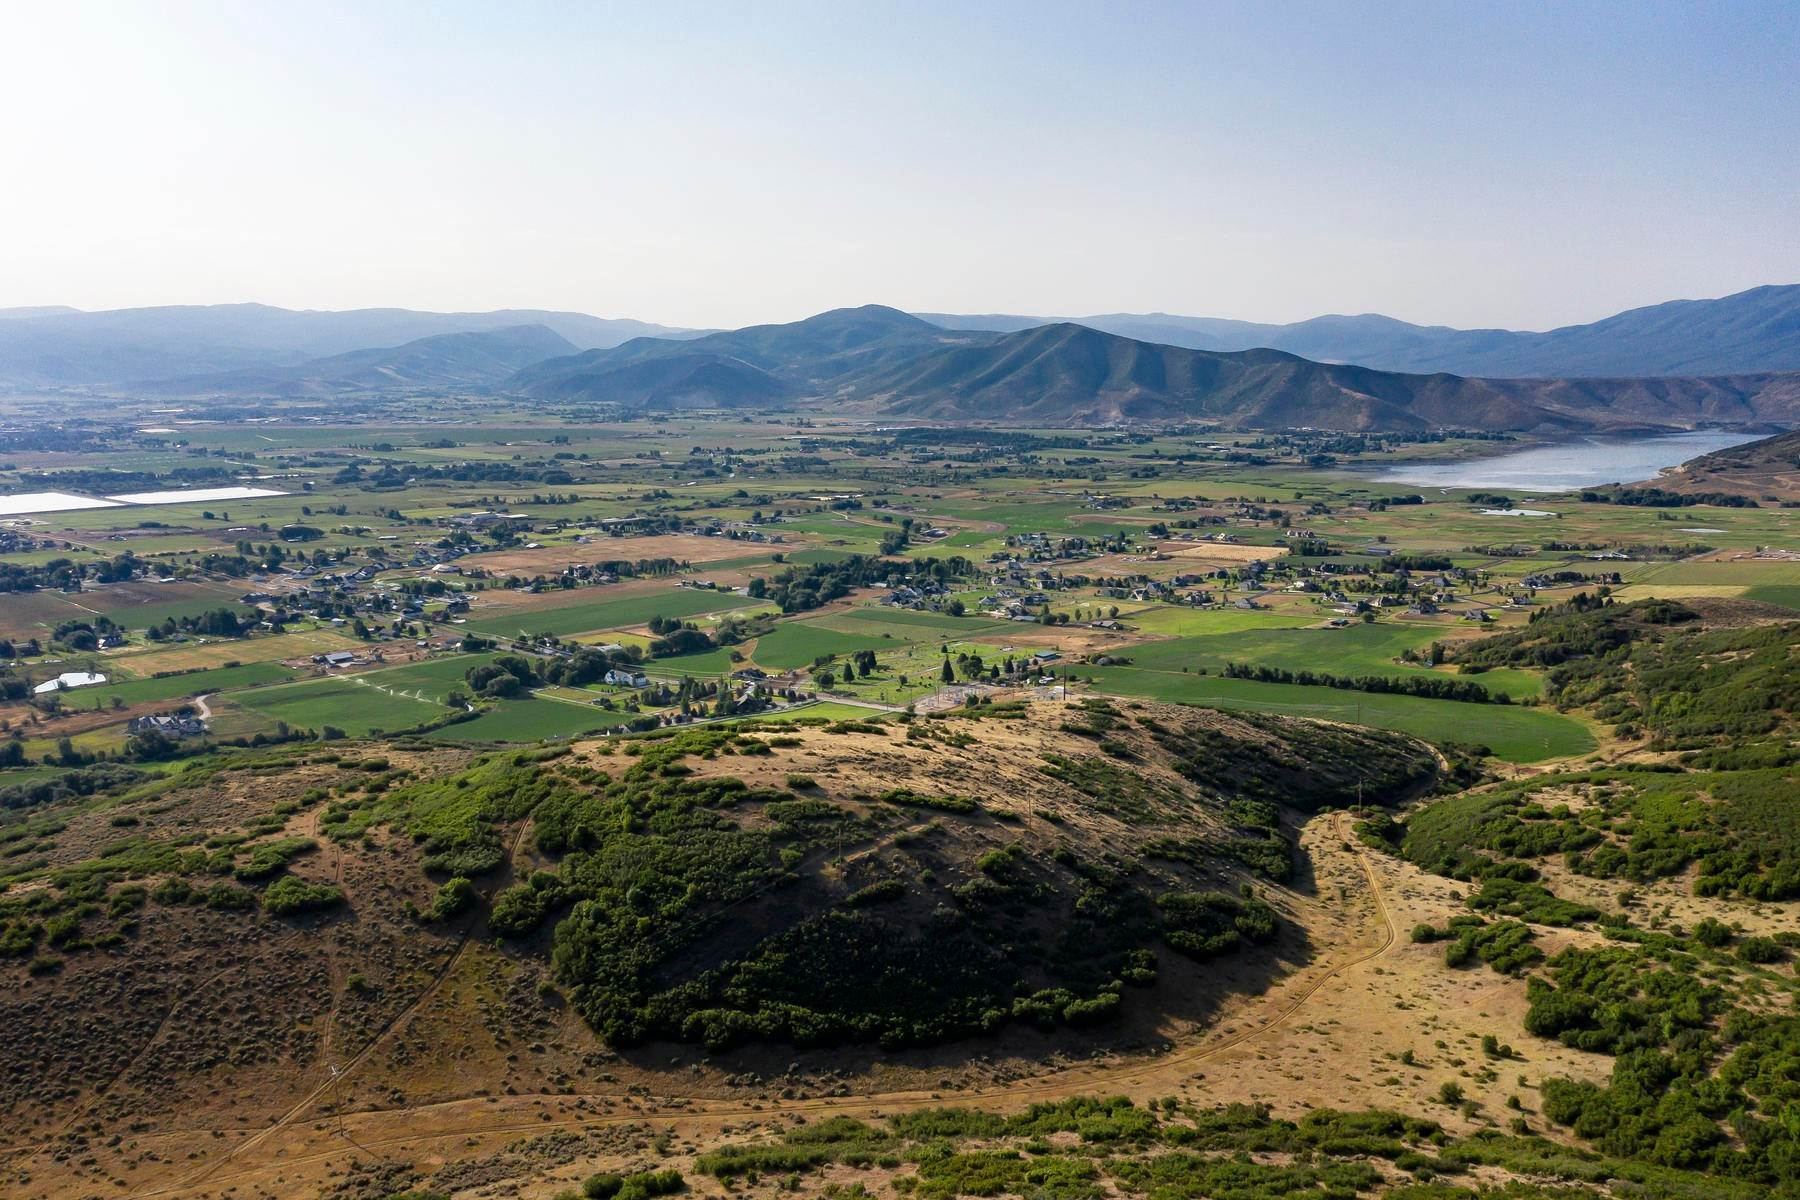 10. Land for Sale at 67 Acres in Midway with Huge Views of the Heber Valley 800 W 500 S Midway, Utah 84049 United States